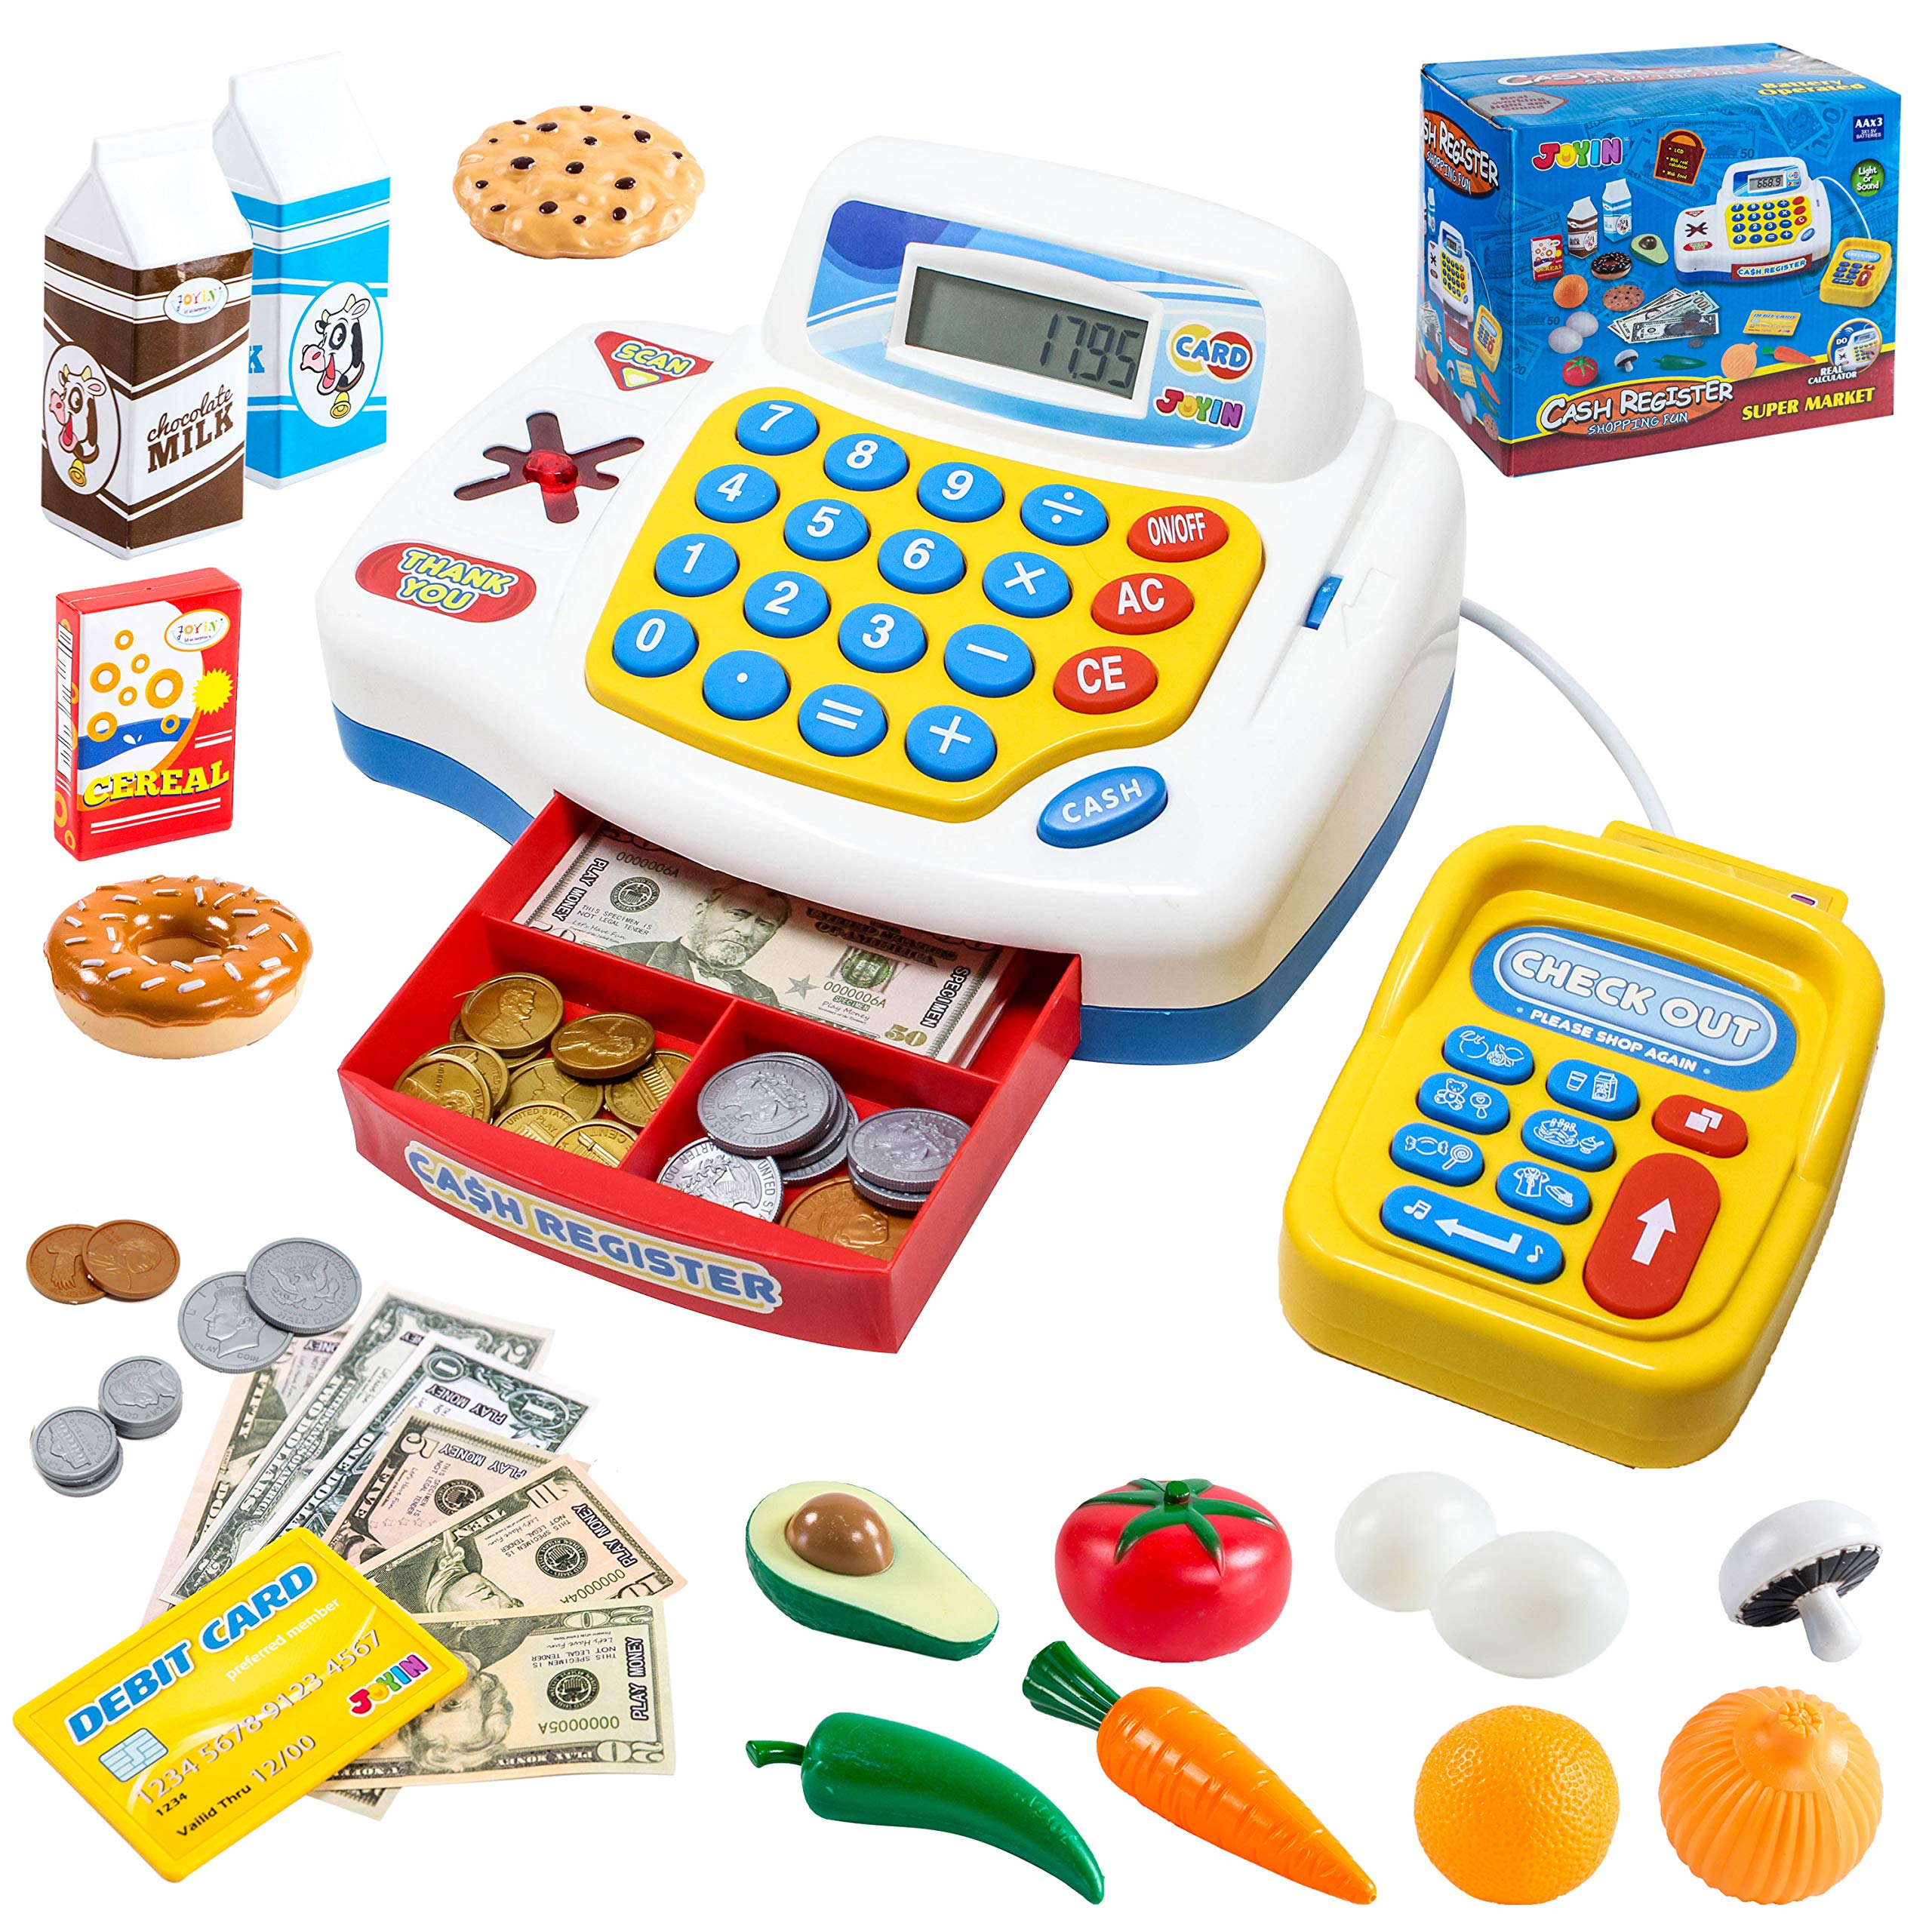 Toy Cash Register Shopping Pretend Play Money Machine with Dual Languages, Scanner, Card Reader and Grocery Play Food Set for Kids Boys and Girls Gifts, Toddler Interactive Learning, Teaching Tools. by JOYIN